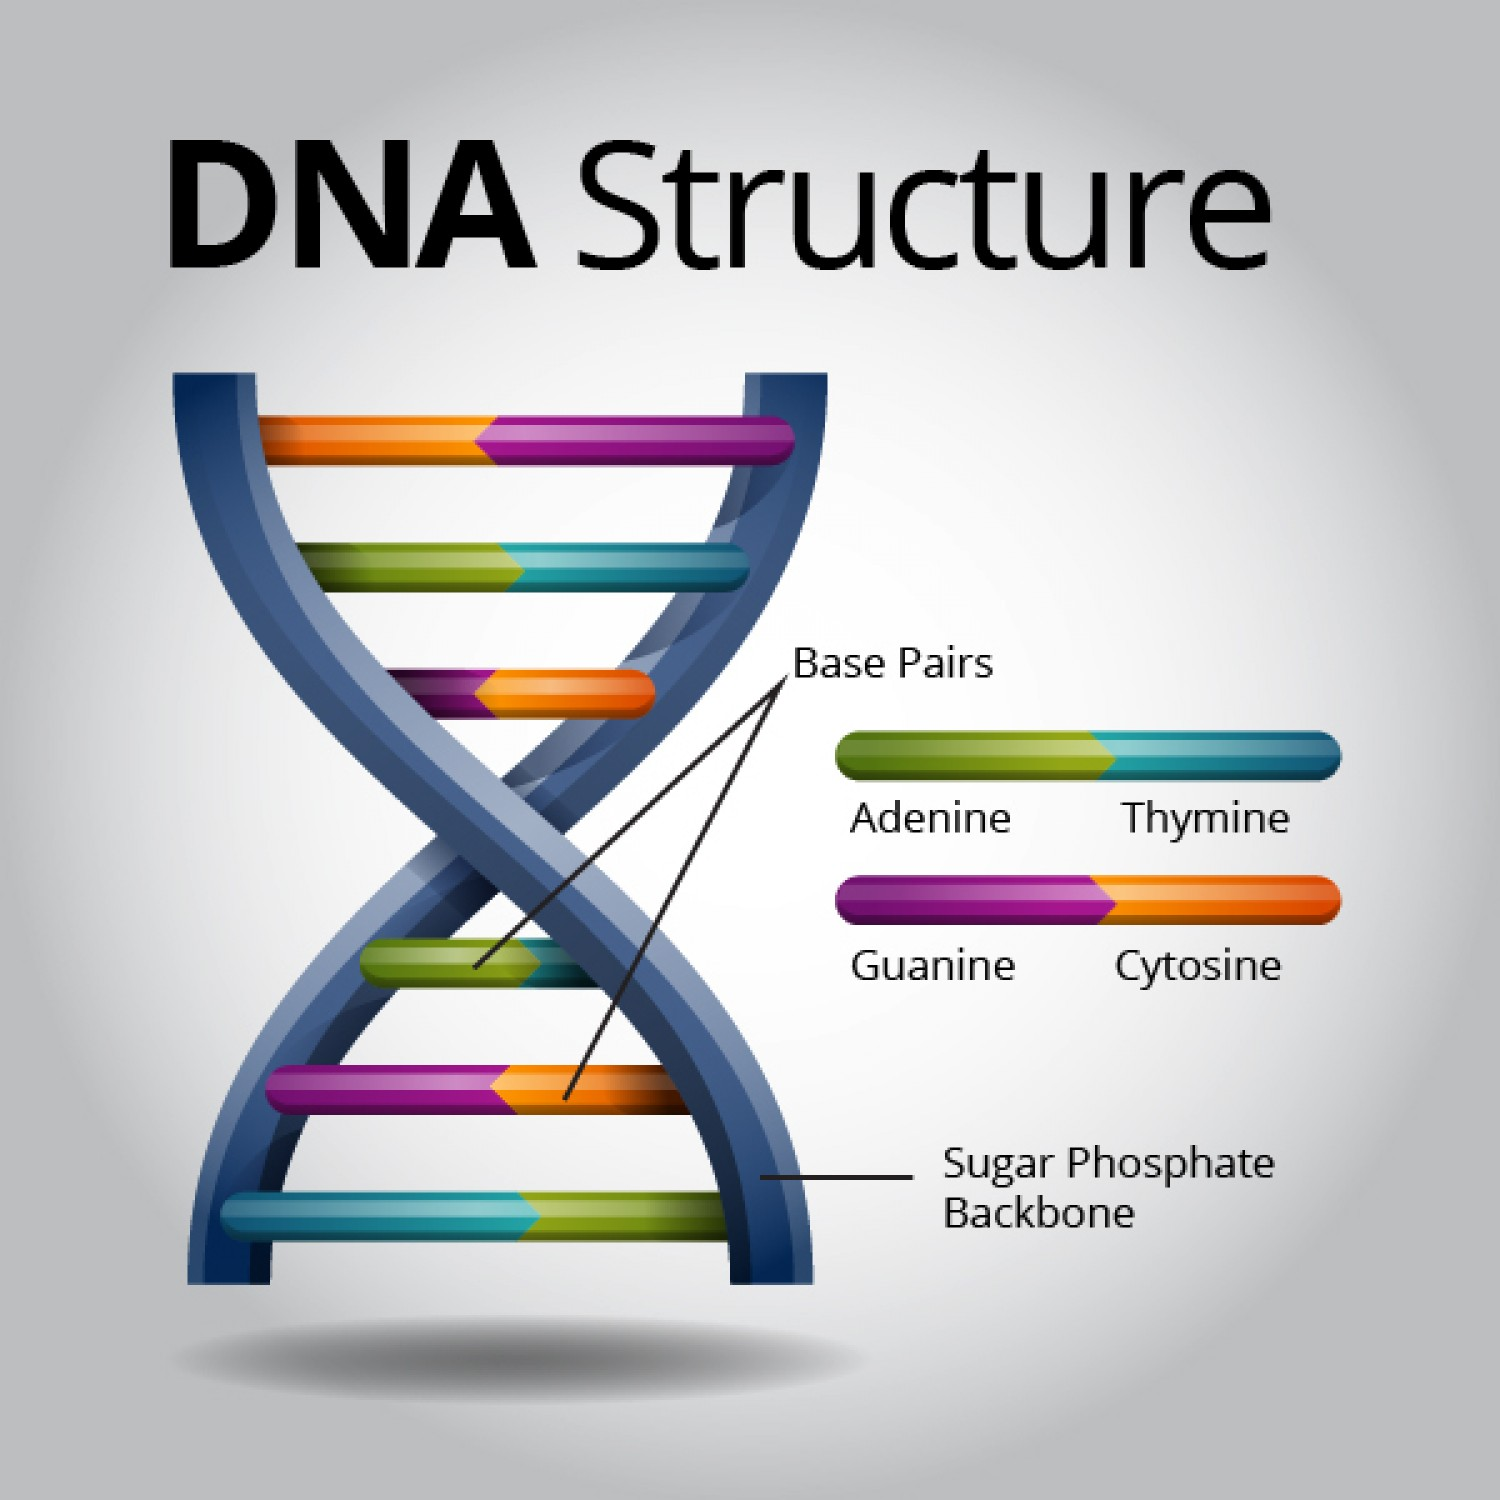 DNA Structure Image Two